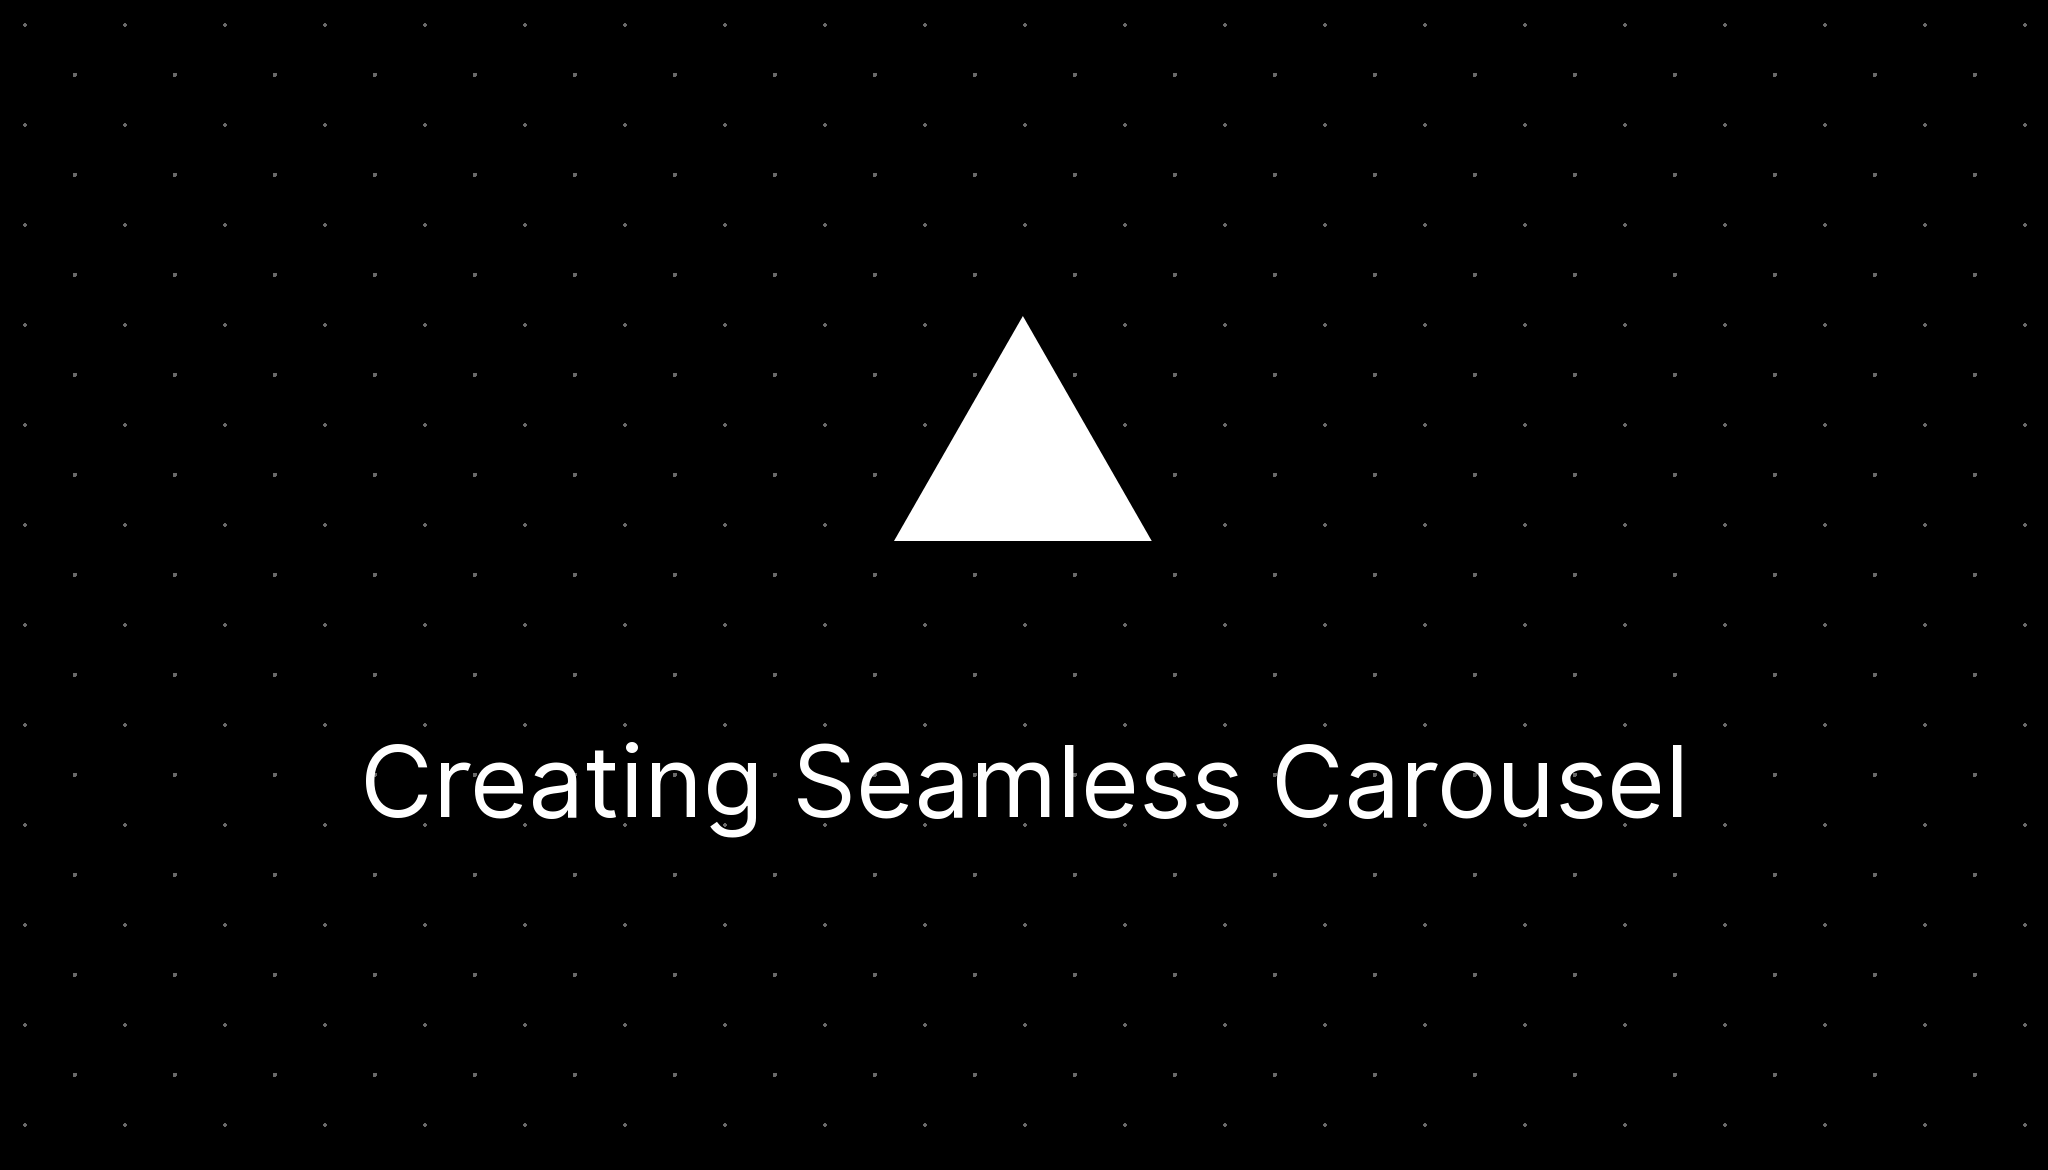 How to create seamless carousels for Instagram?